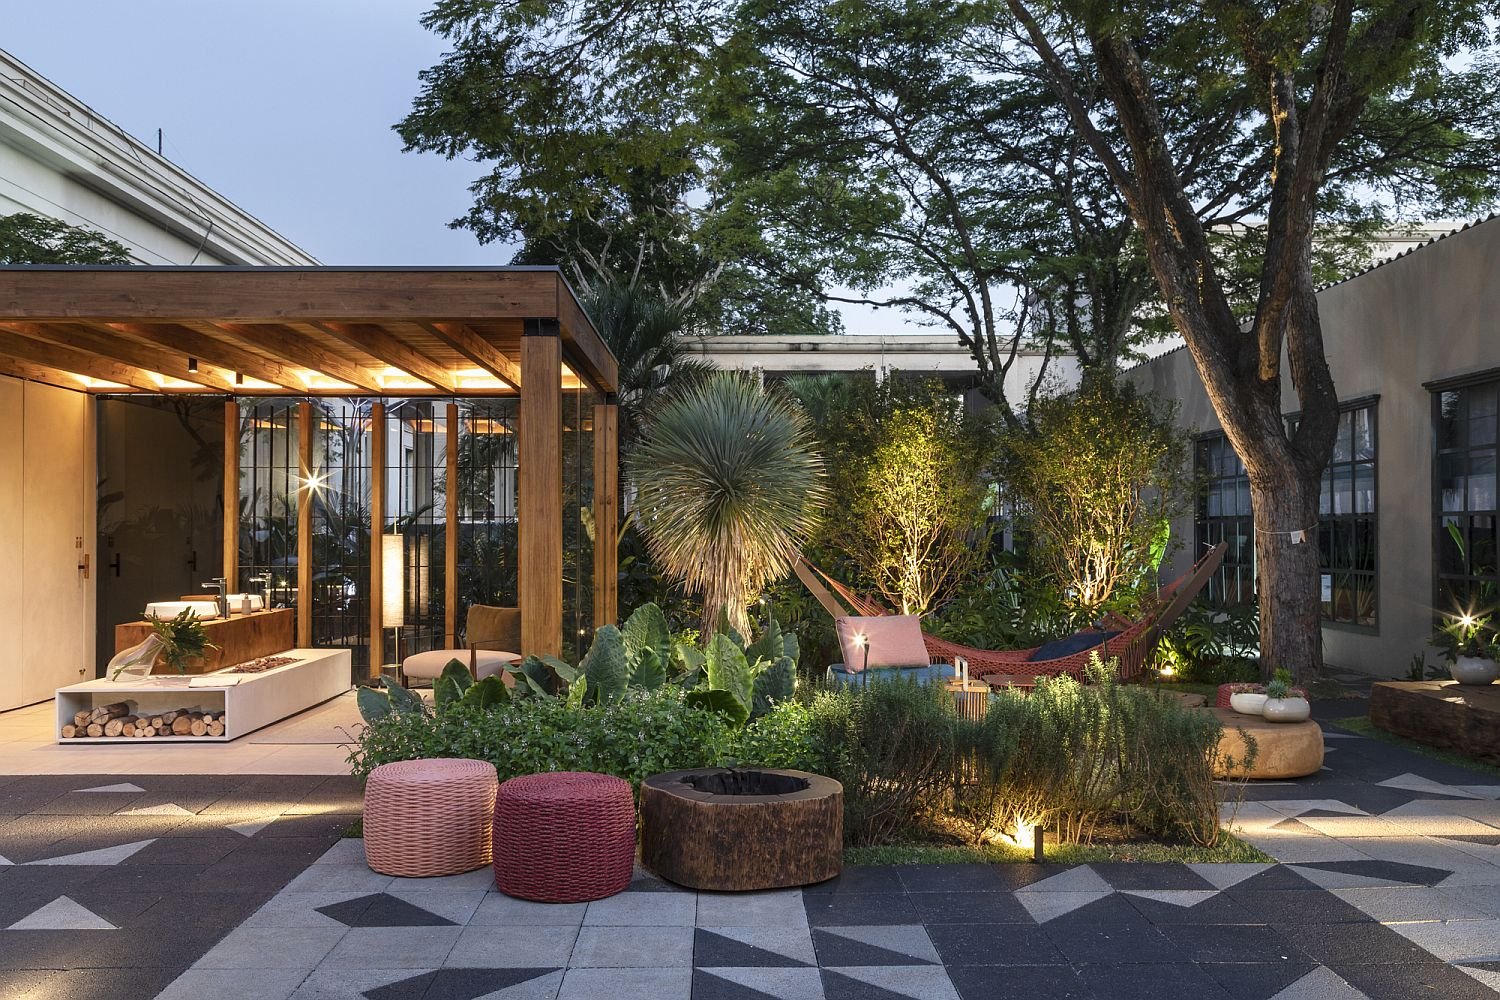 Luxurious Brazilian Terrace Design Inspired by Nature and